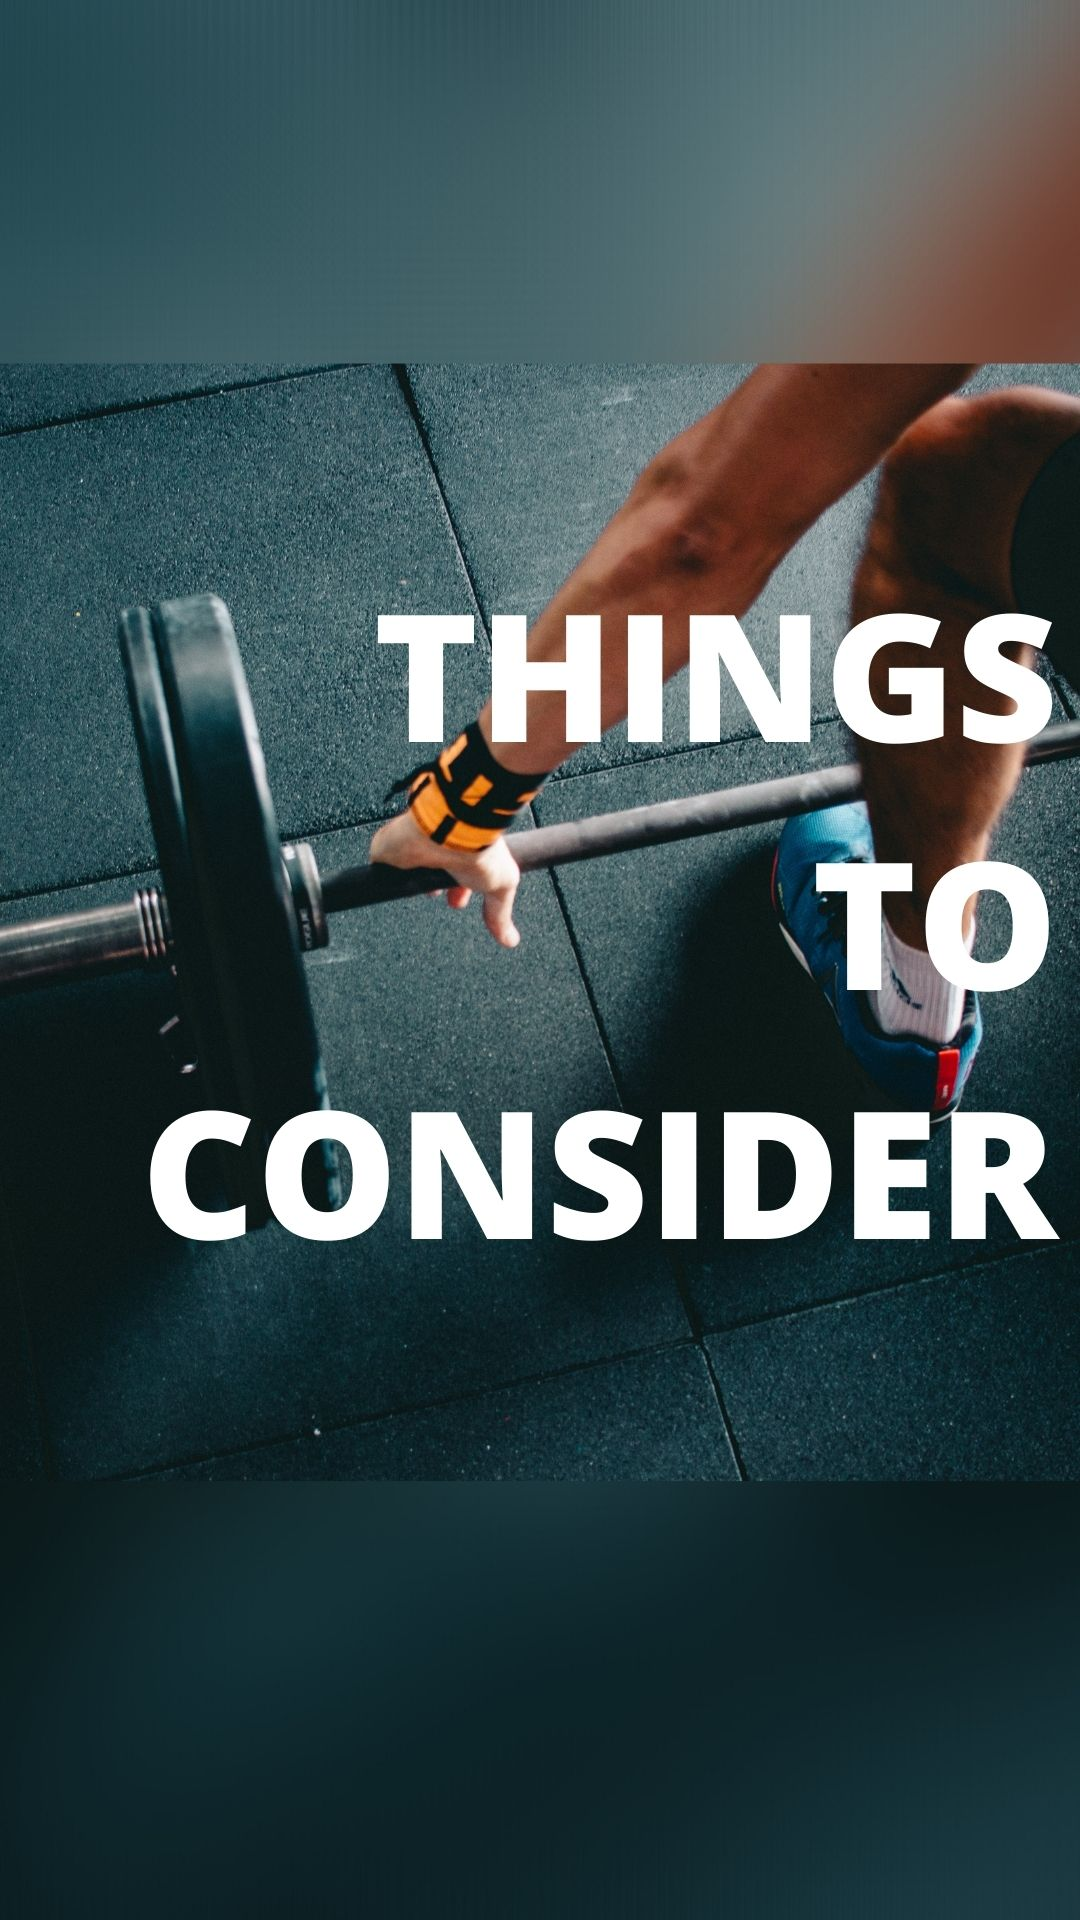 The Espresso Health Show: Things to Consider when Starting a Fitness Program